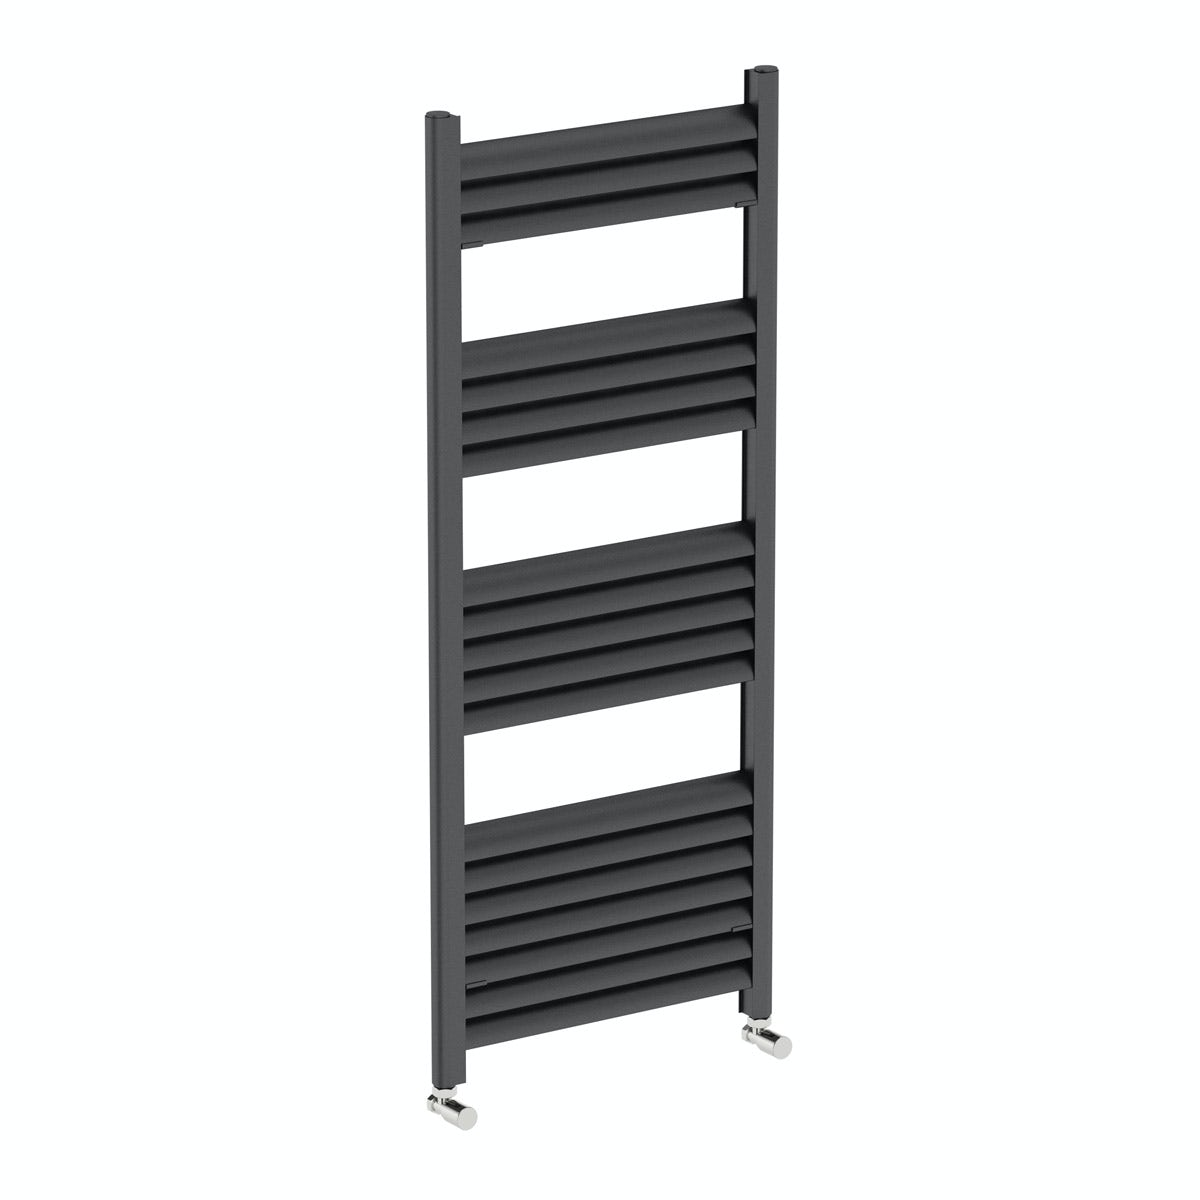 Mode Carter charcoal black heated towel rail 1200 x 500